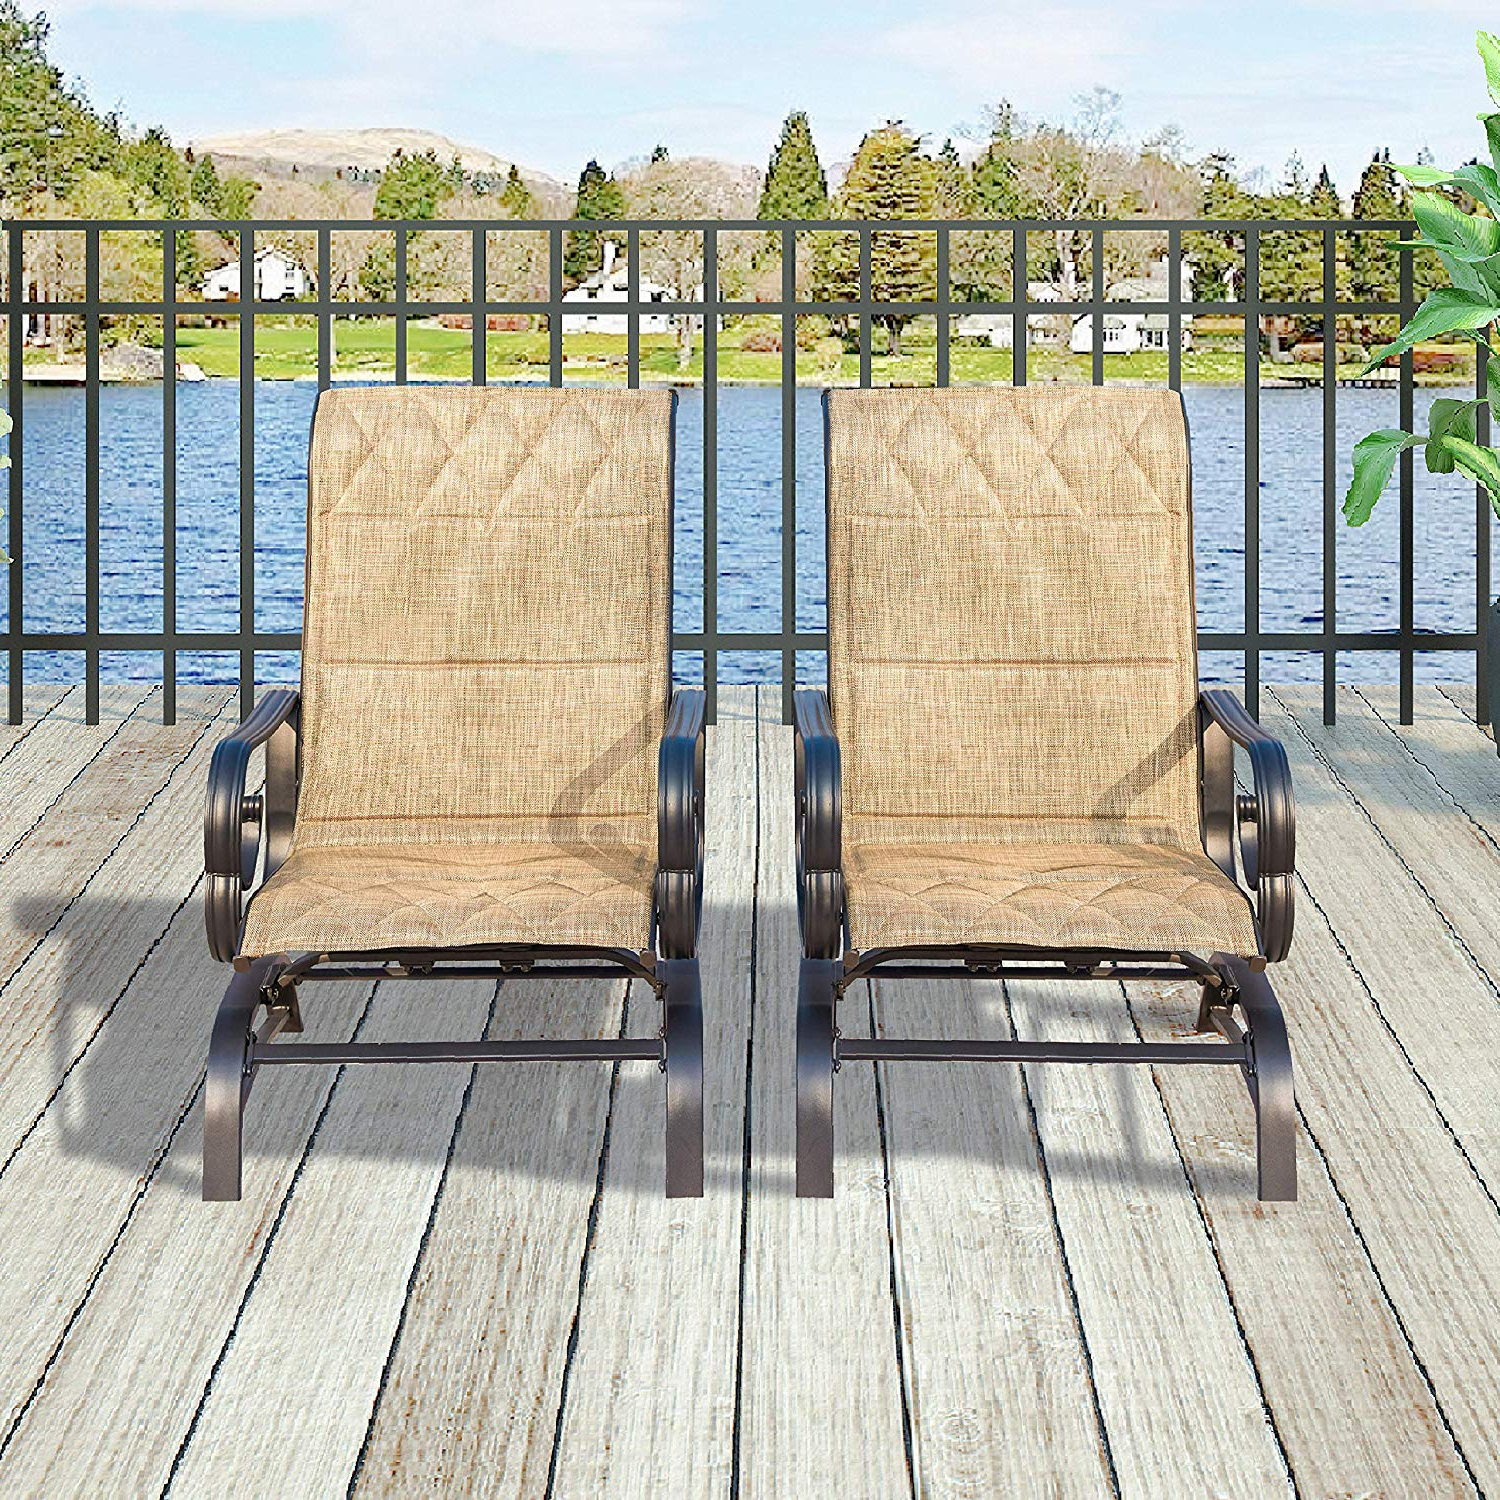 Patio Festival ® Outdoor Swing Glider Chair Patio Swing Furniture Seating Rocking Bistro Chairs Set Of 2,textilene Mesh Steel Frame (2 Pc 1, Beige) With Regard To 2020 Outdoor Patio Swing Glider Bench Chair S (View 6 of 30)